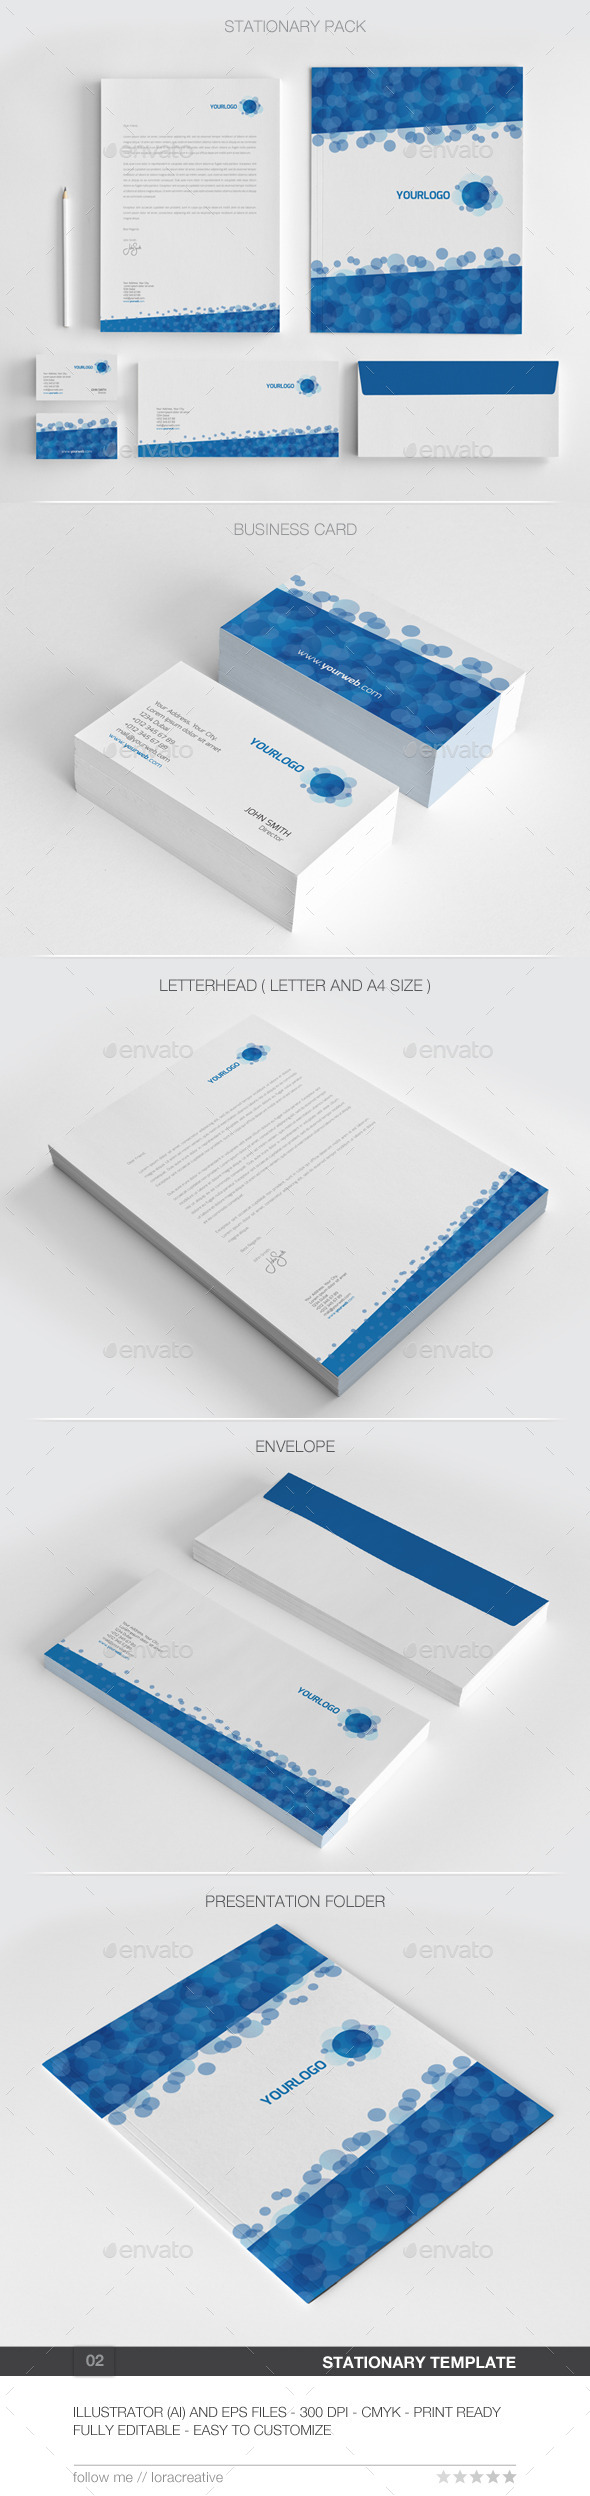 Bubble Concept Stationary Pack - 02 - Stationery Print Templates